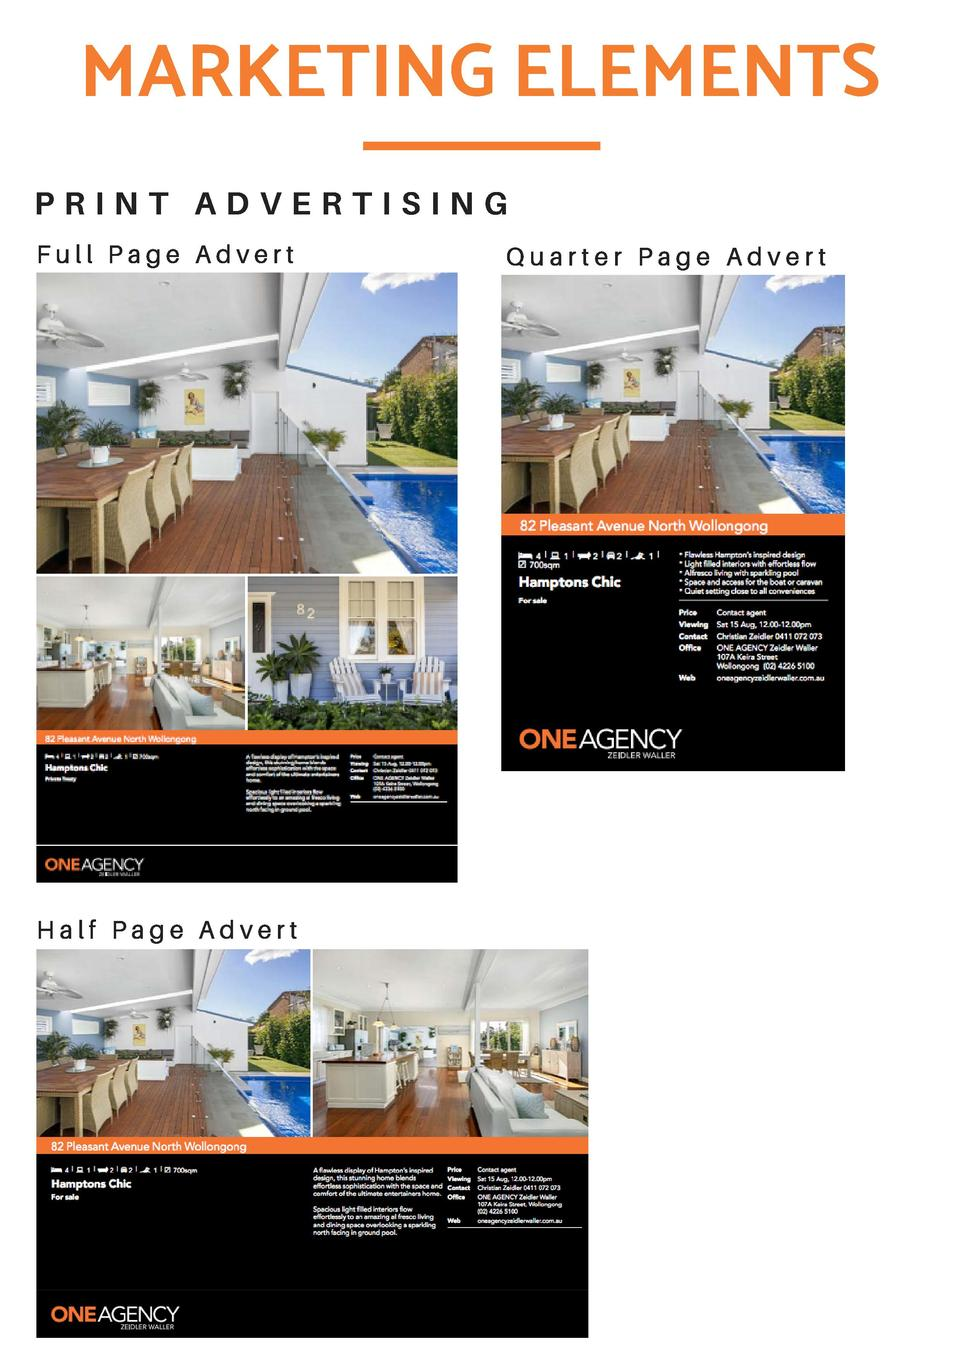 MARKETING ELEMENTS PRINT ADVERTISING Full Page Advert  Half Page Advert  Quarter Page Advert